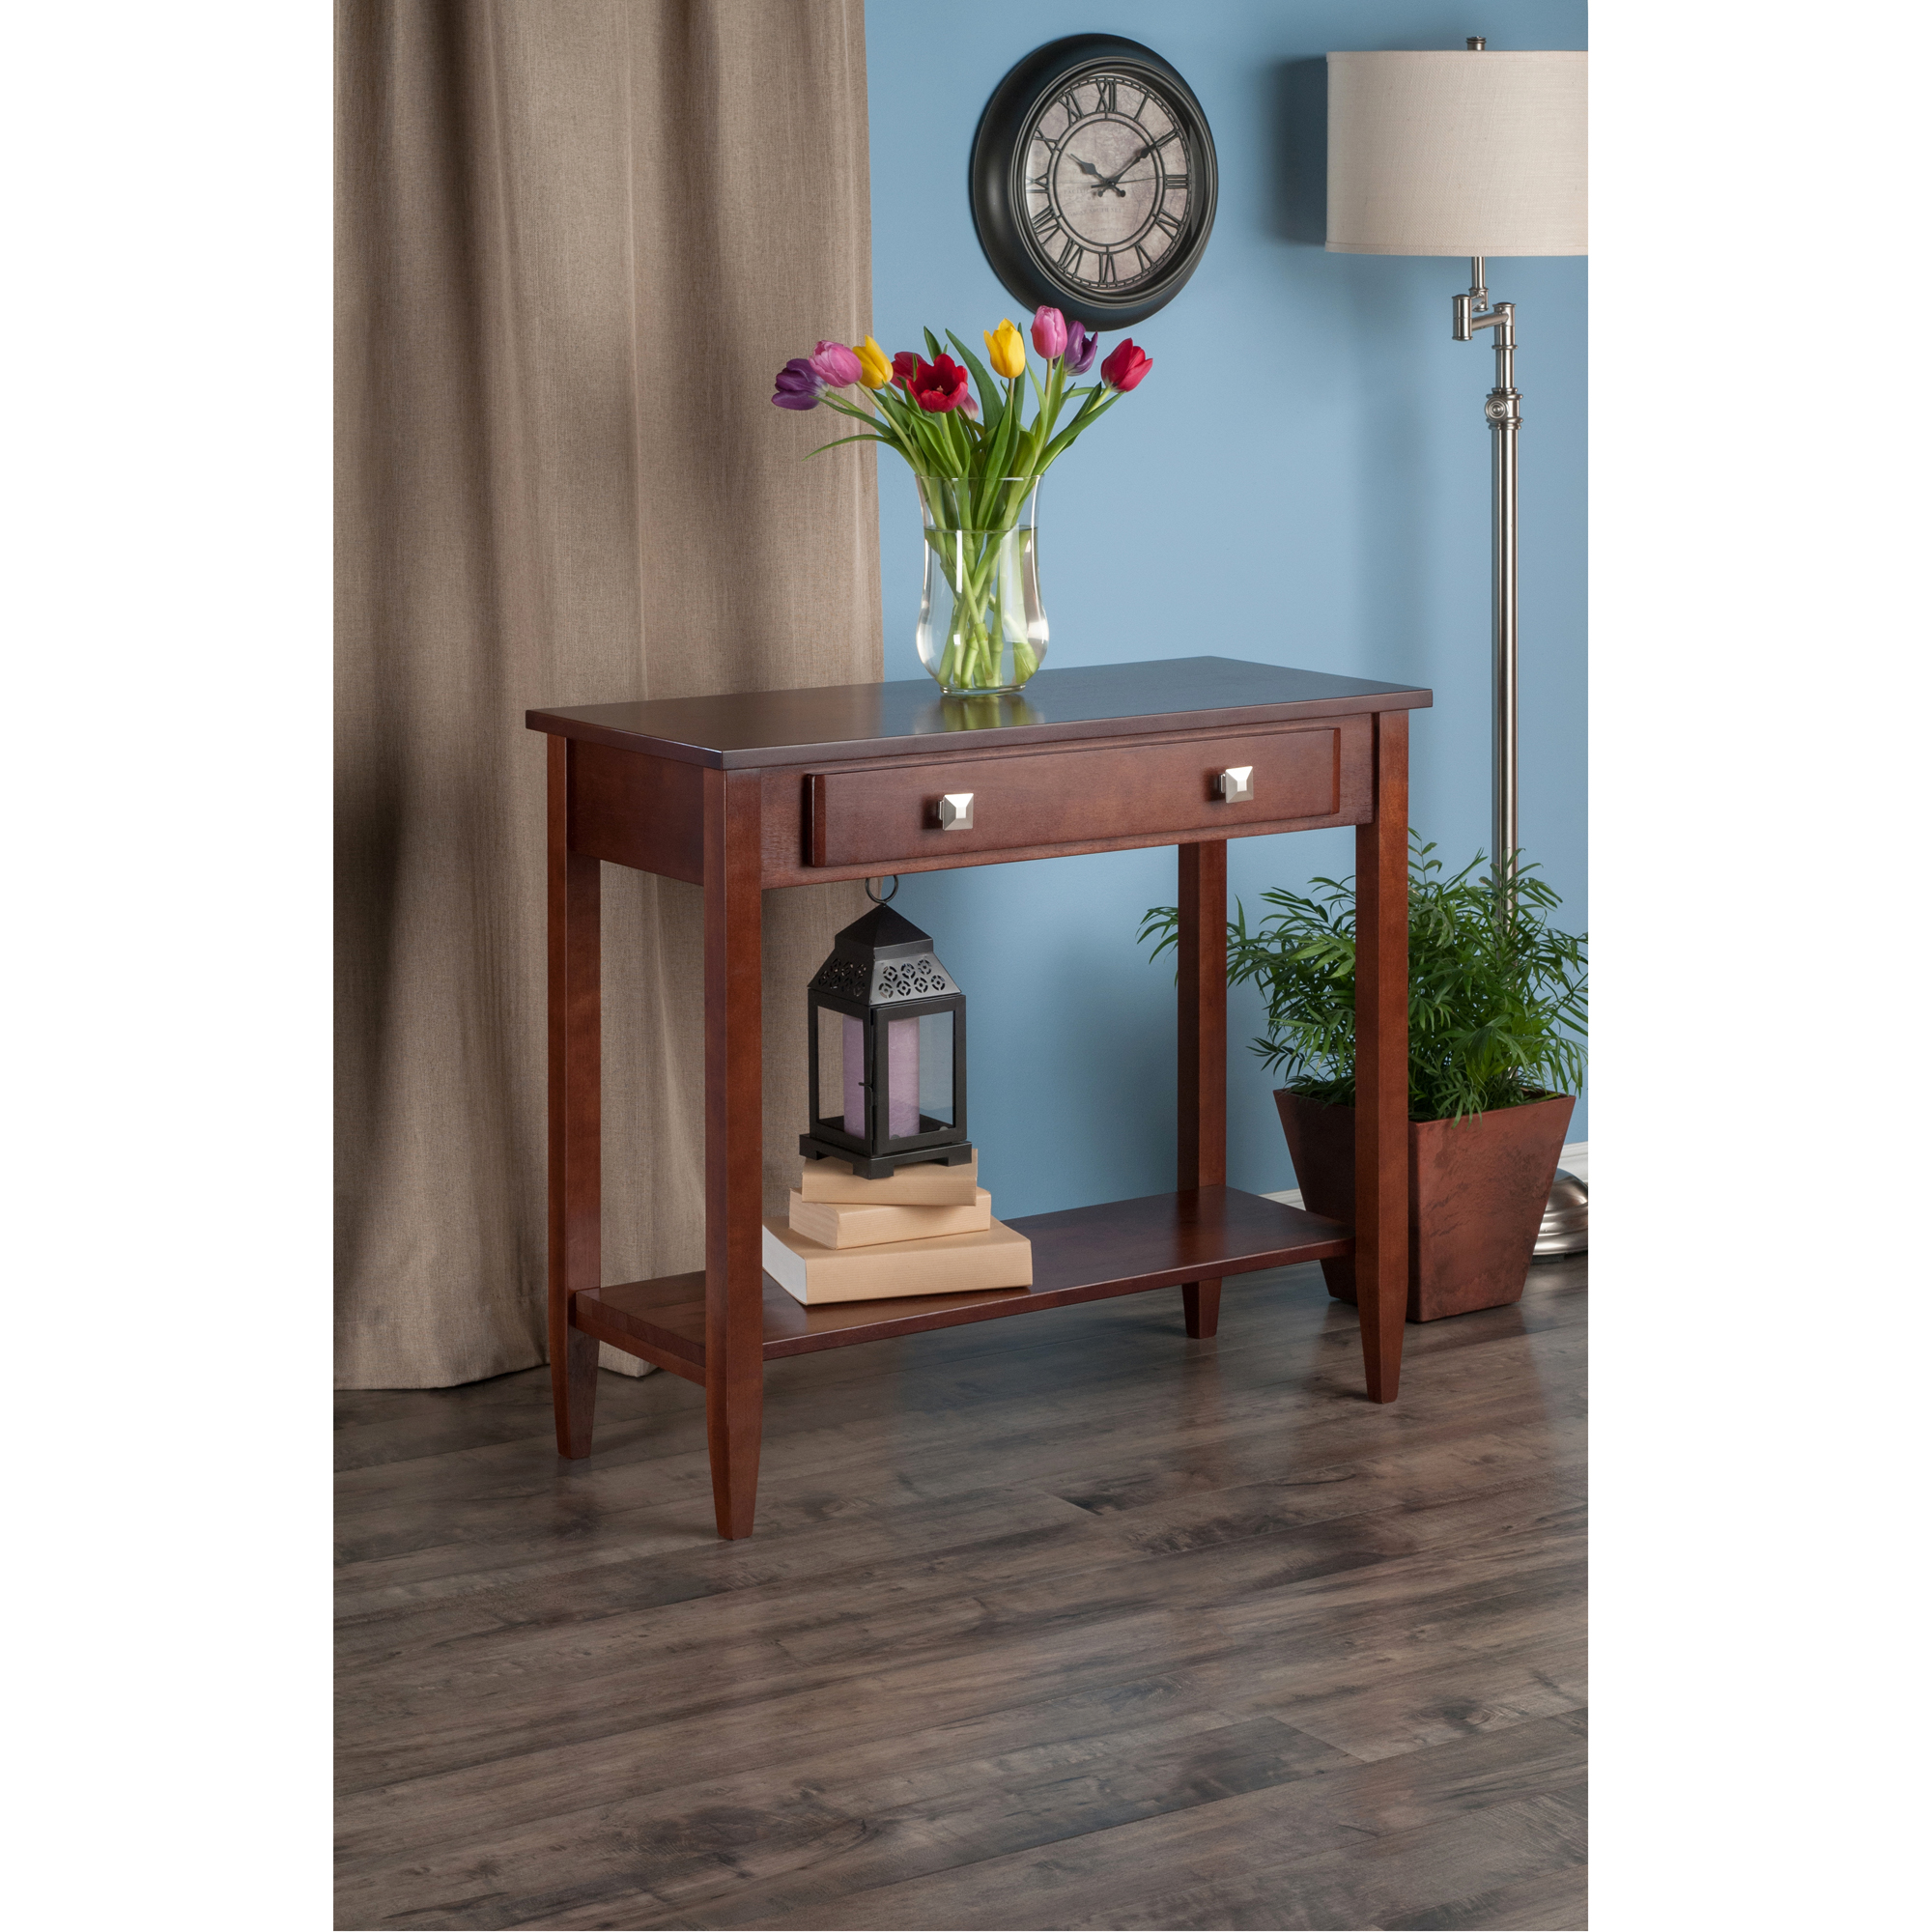 Winsome Wood Richmond Console Table with Drawer, Walnut Finish